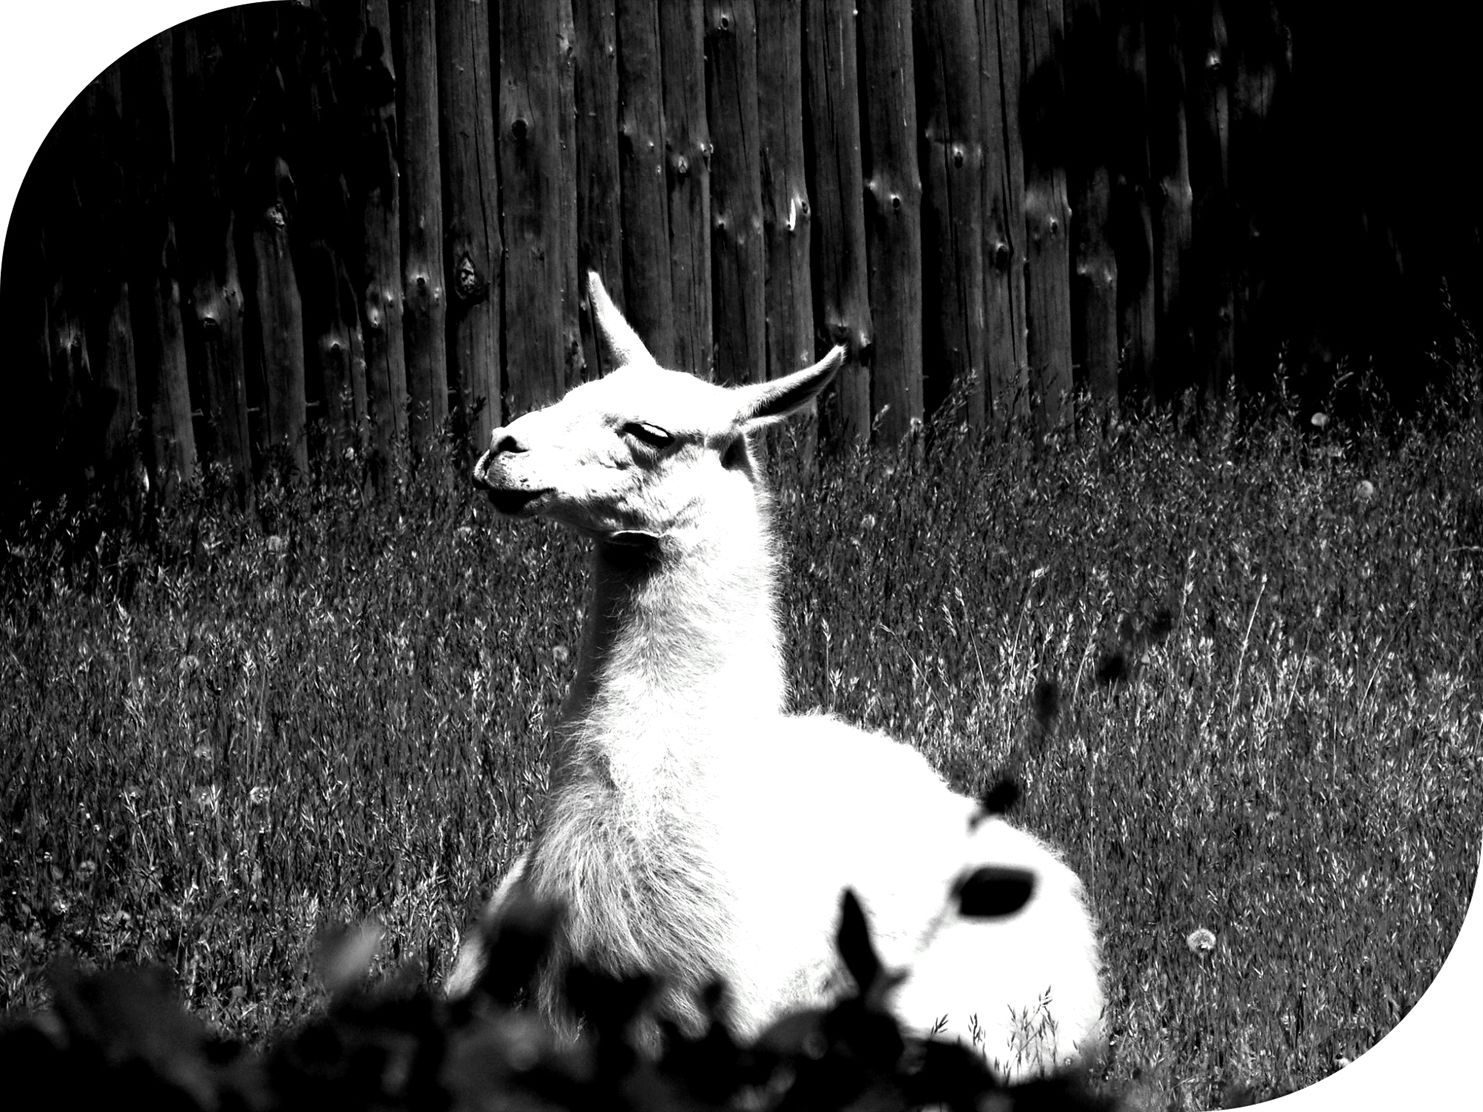 Animal animal photography llama 96894 bw portrait photography quotes photograph karaoke mp3 download